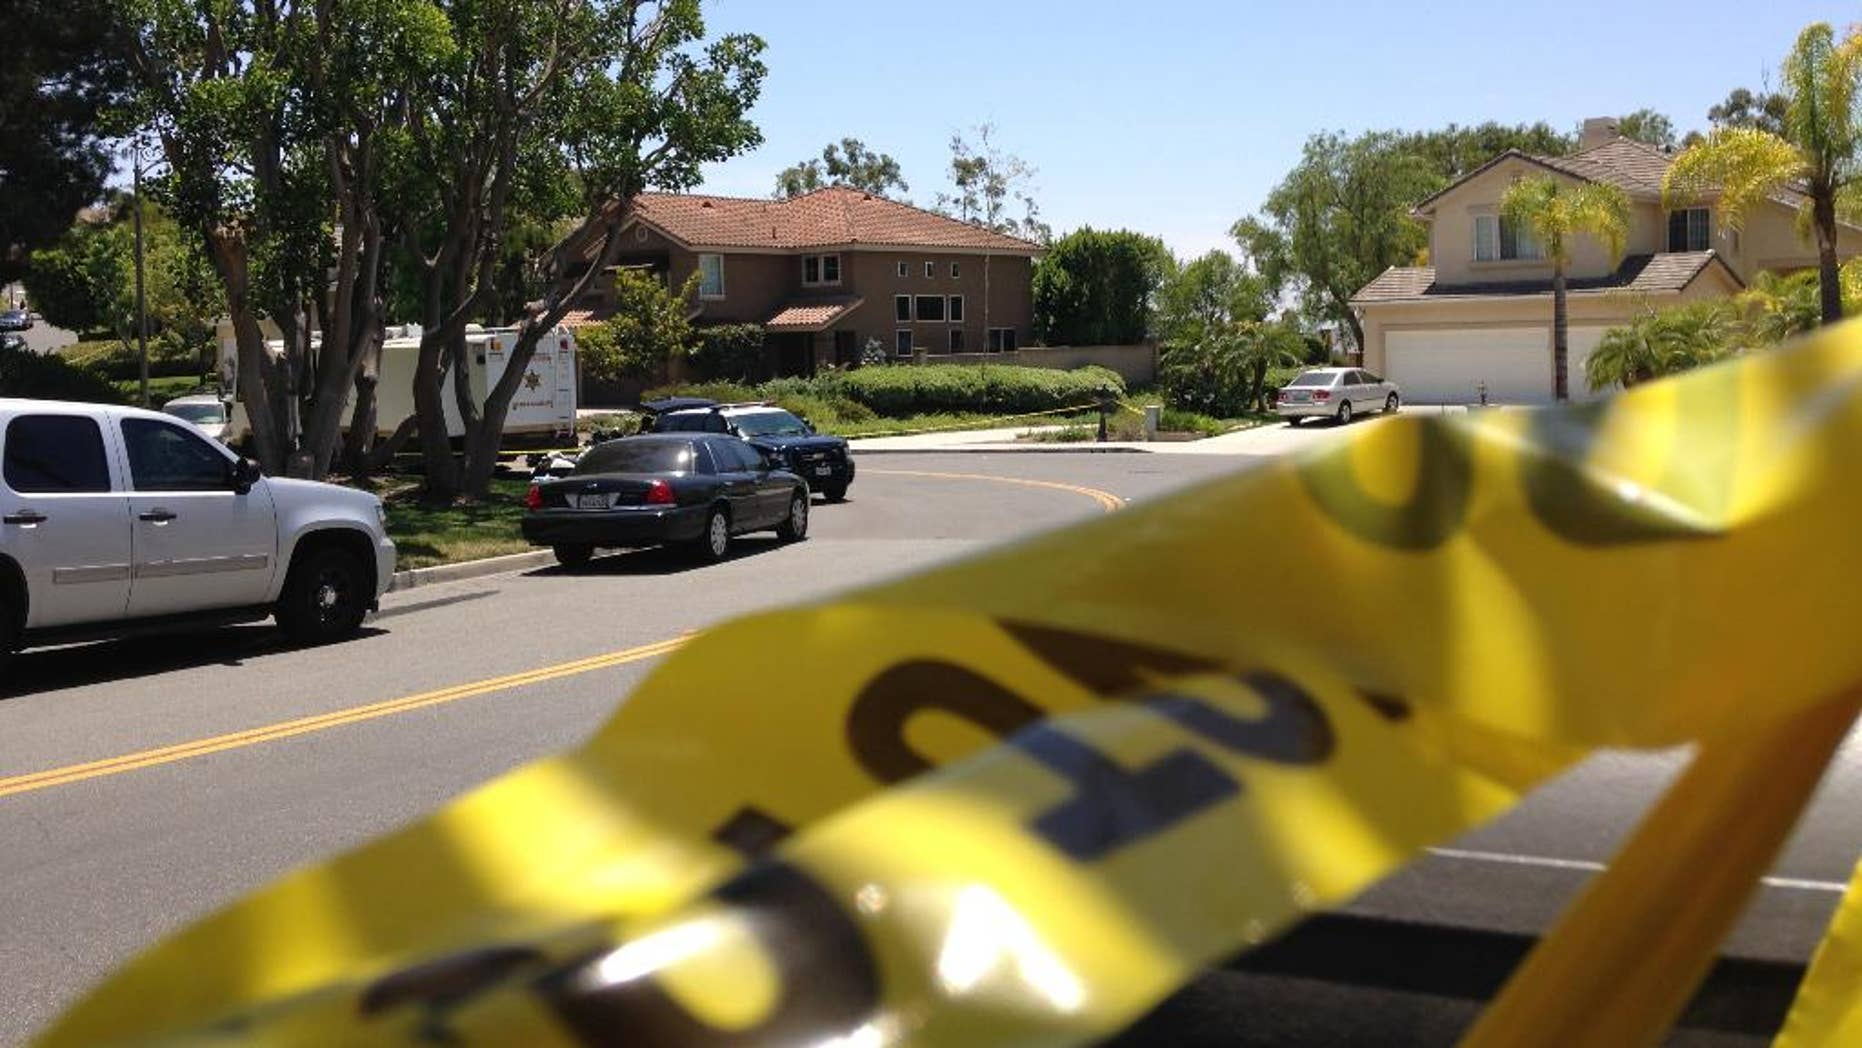 Police tape closes a street where four people were found dead in a home, center, on Tuesday, May 27, 2014 in suburban Mission Viejo, Calif. Authorities said the bodies were found by Orange County deputies making a welfare check after a relative's emergency call. The dead people were only described as two males and two females, and the Sheriff's Department was not releasing any information on how they may be related.(AP Photo/Gillian Flaccus)